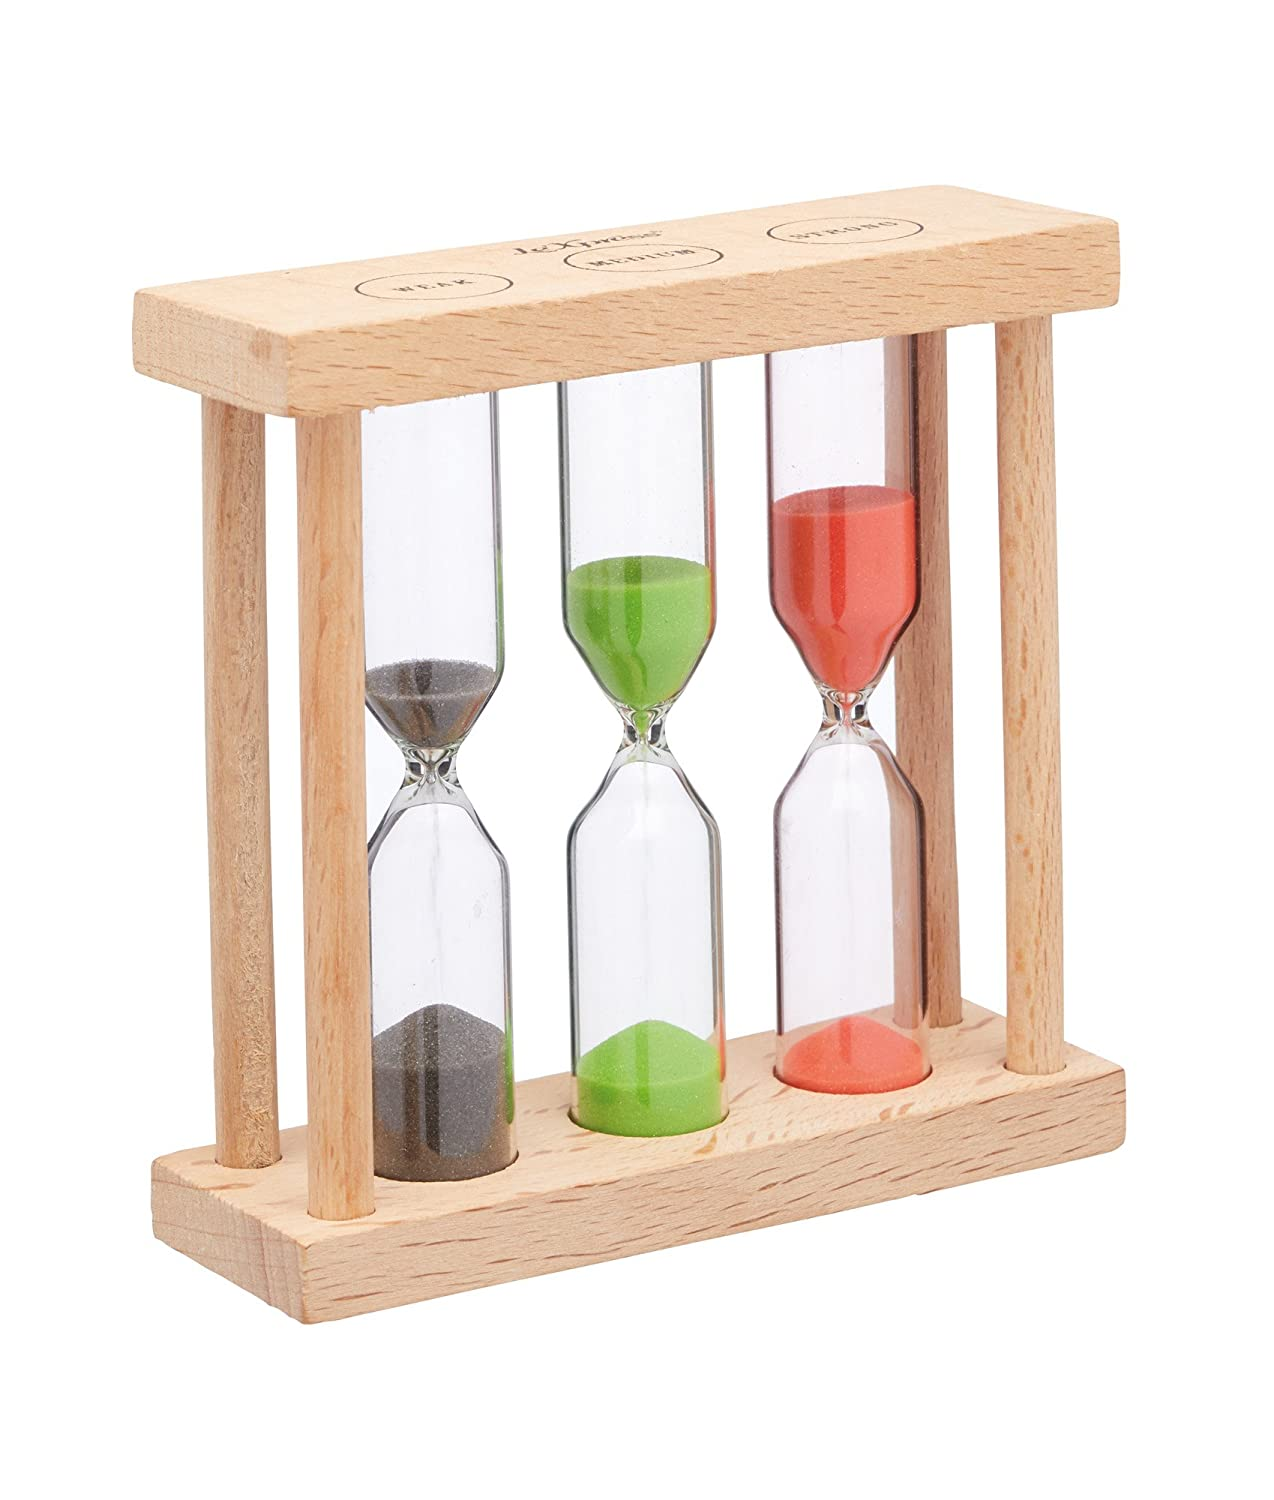 KitchenCraft Le'Xpress 3-in-1 Wooden Hourglass-Style Tea Timer, 9 x 3 x 9 cm (3.5